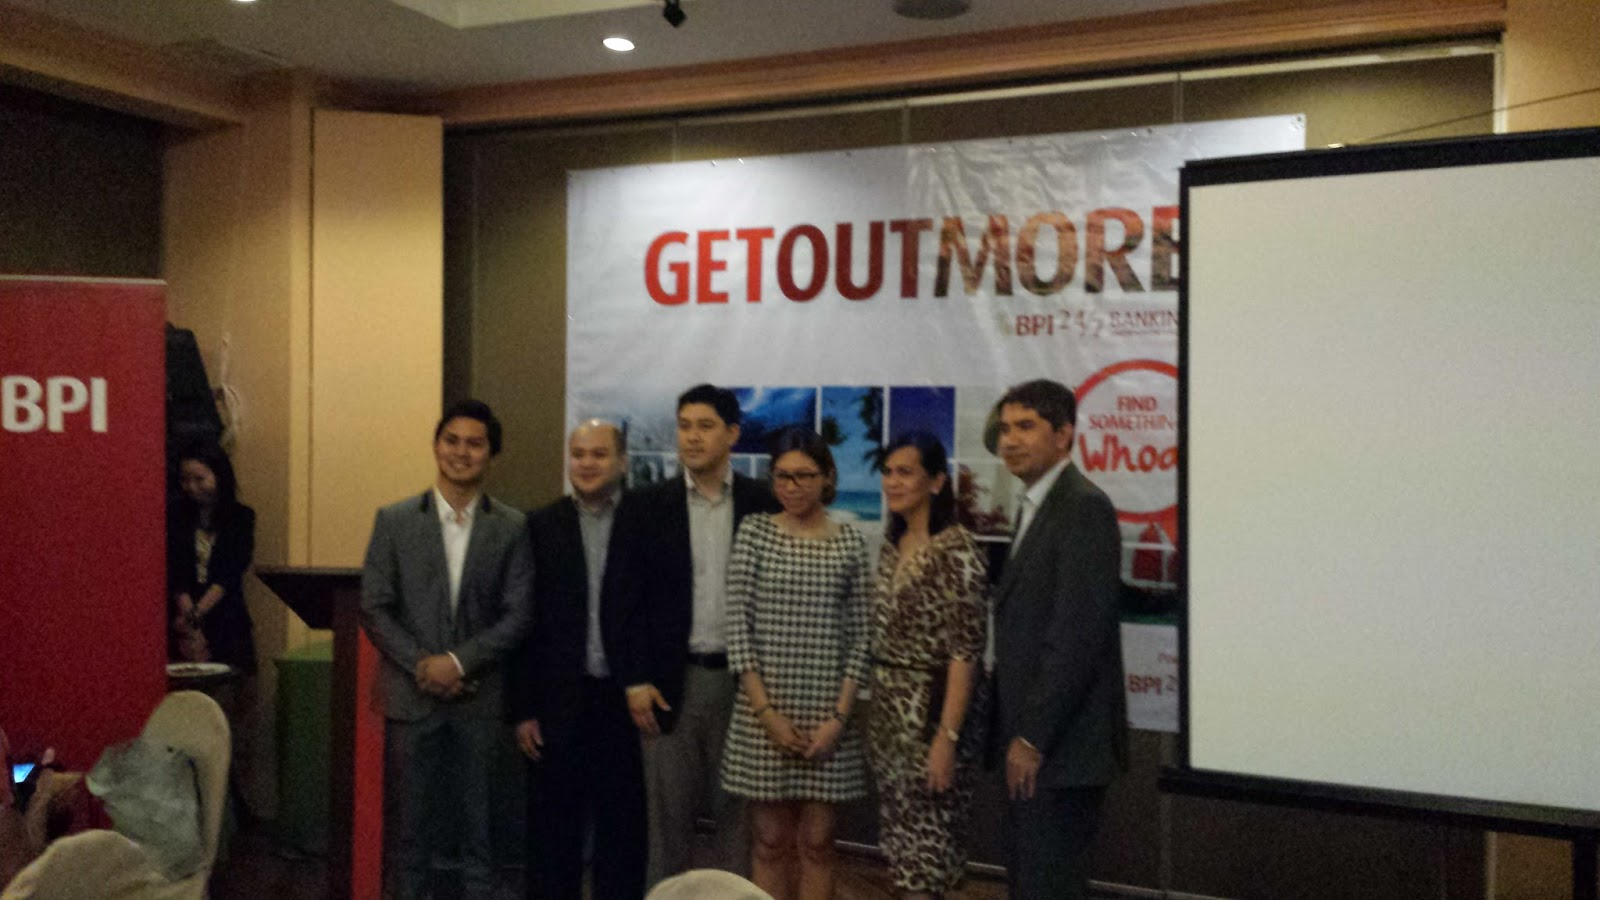 BPI Get Out More Team